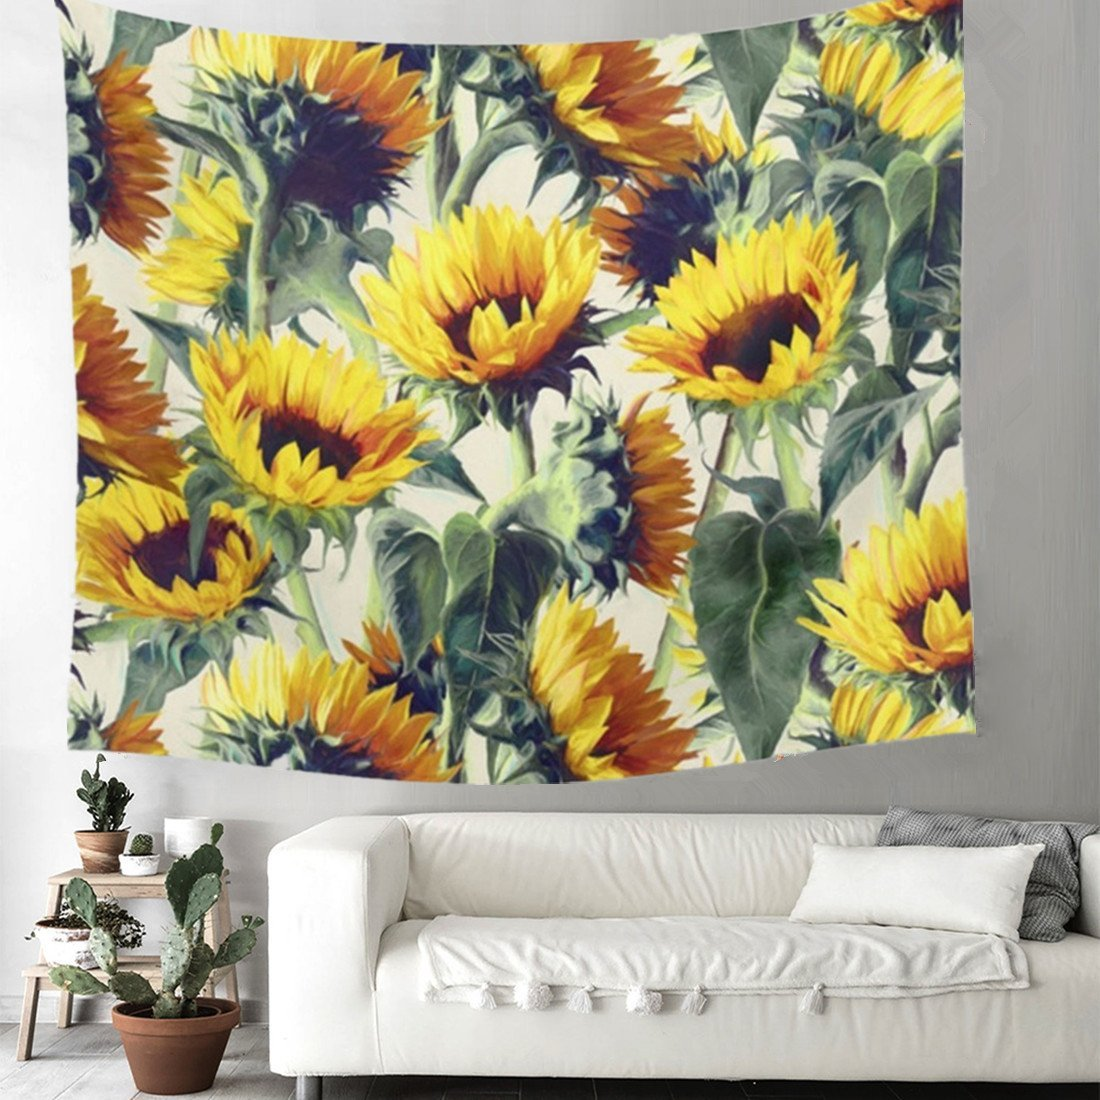 Abstract Daisy Sunflower Dorm Wall Tapestry